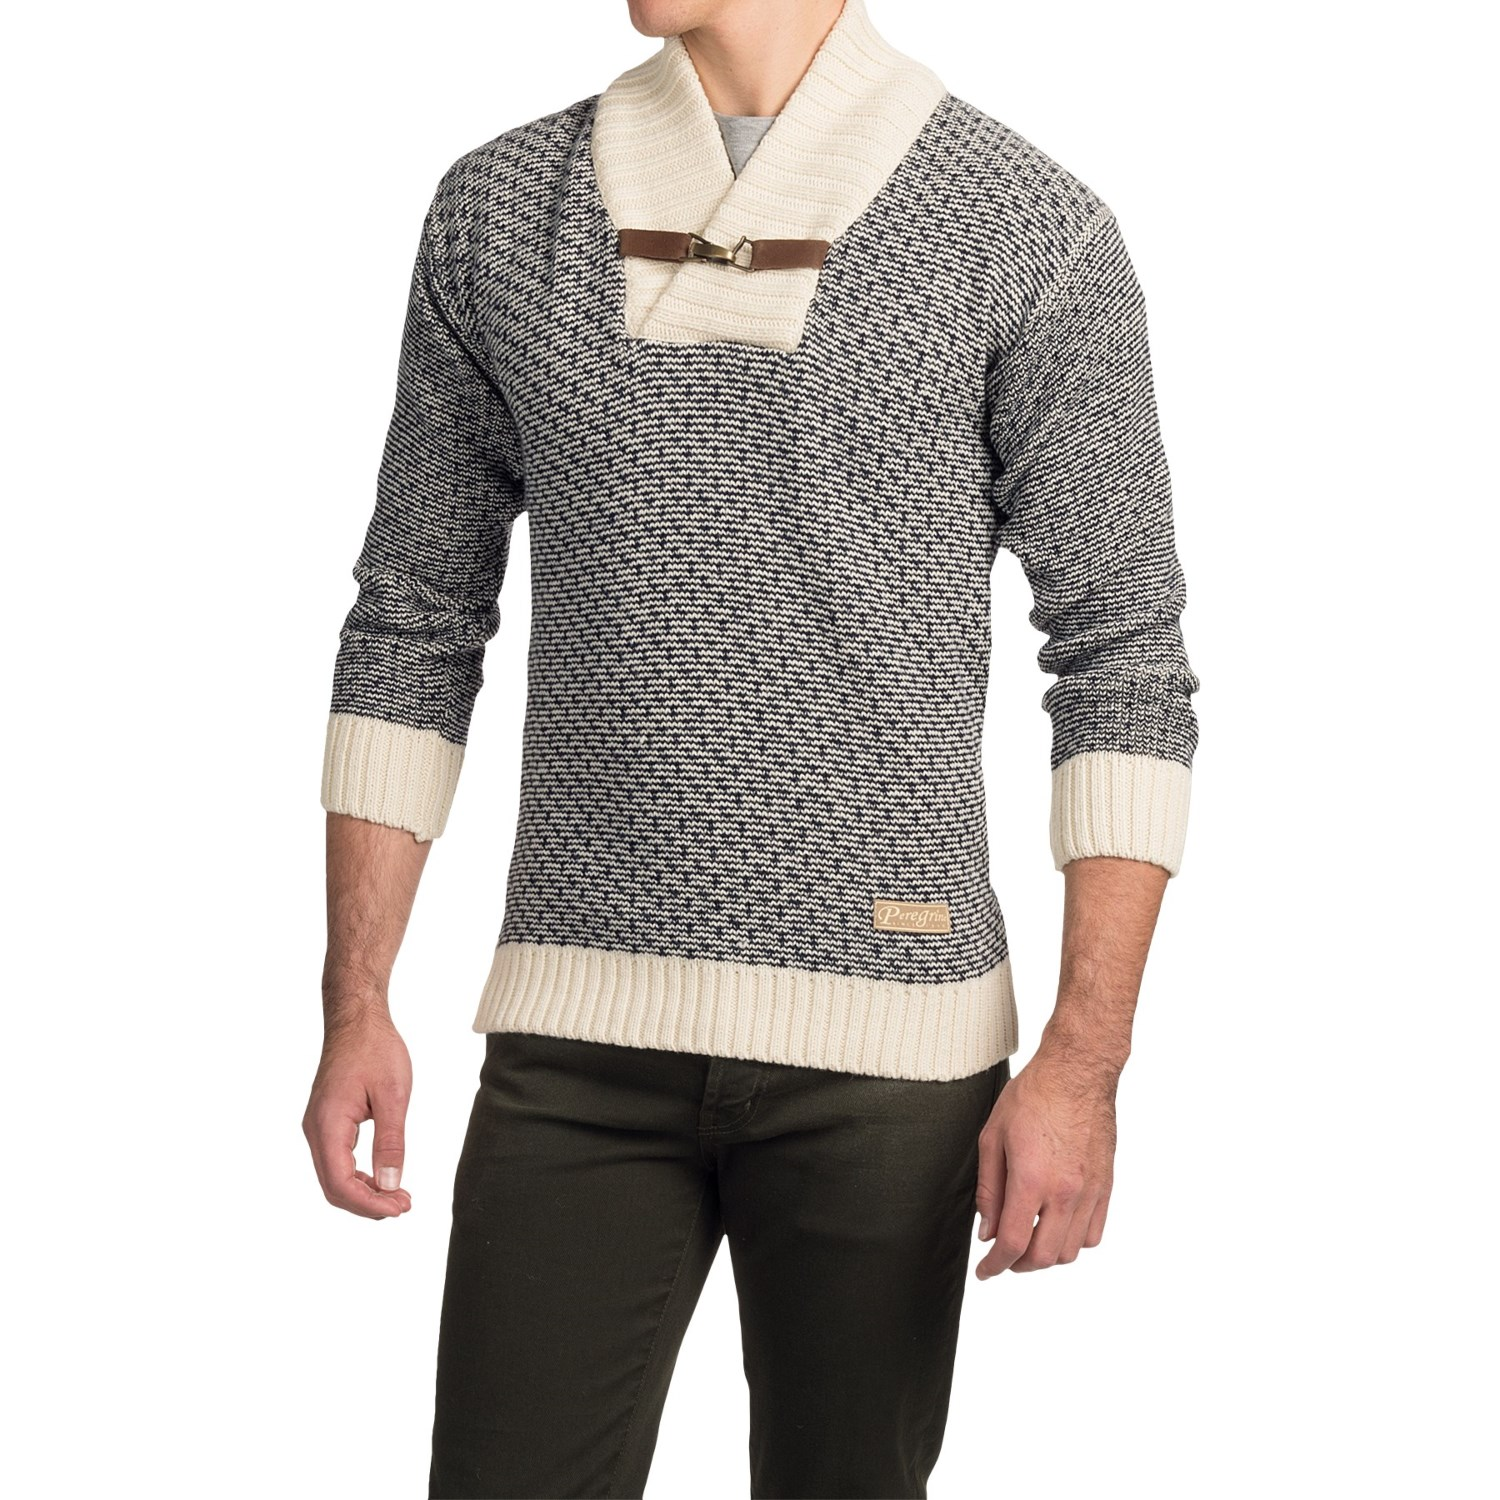 British Christmas Jumpers - The Nordic Blue Mens Xmas Sweater - Made in Great Britain. by British Christmas Jumpers. $ $ 49 5 out of 5 stars 1. Product Features Christmas Nordic pattern on your sweater. This sweater isn't Dickies Men's Ragg Wool Nordic Crew Pullover. by Dickies.